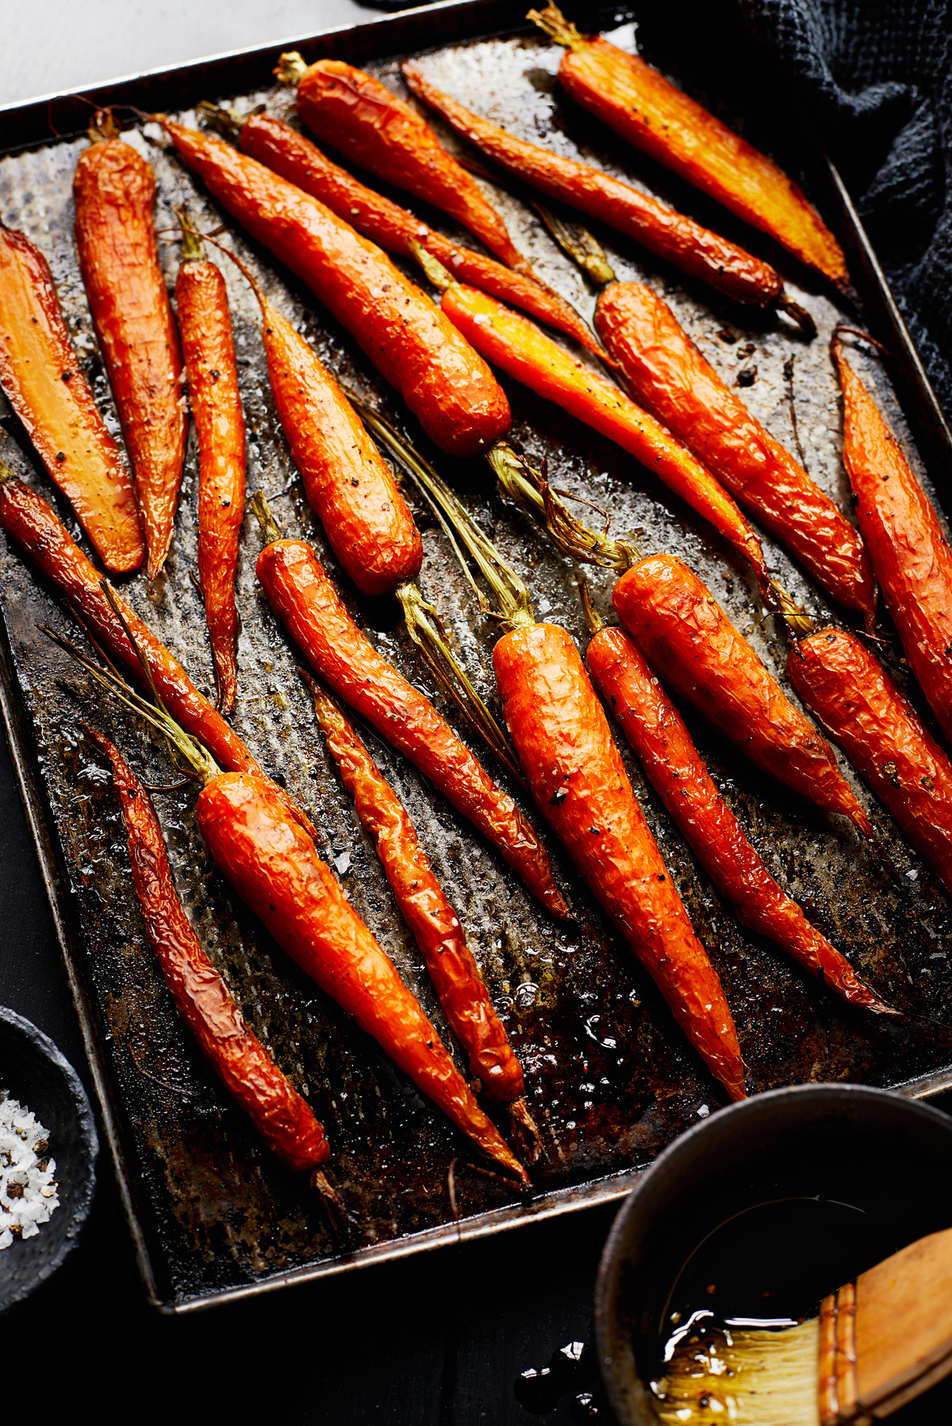 Roasted Carrots in Tray